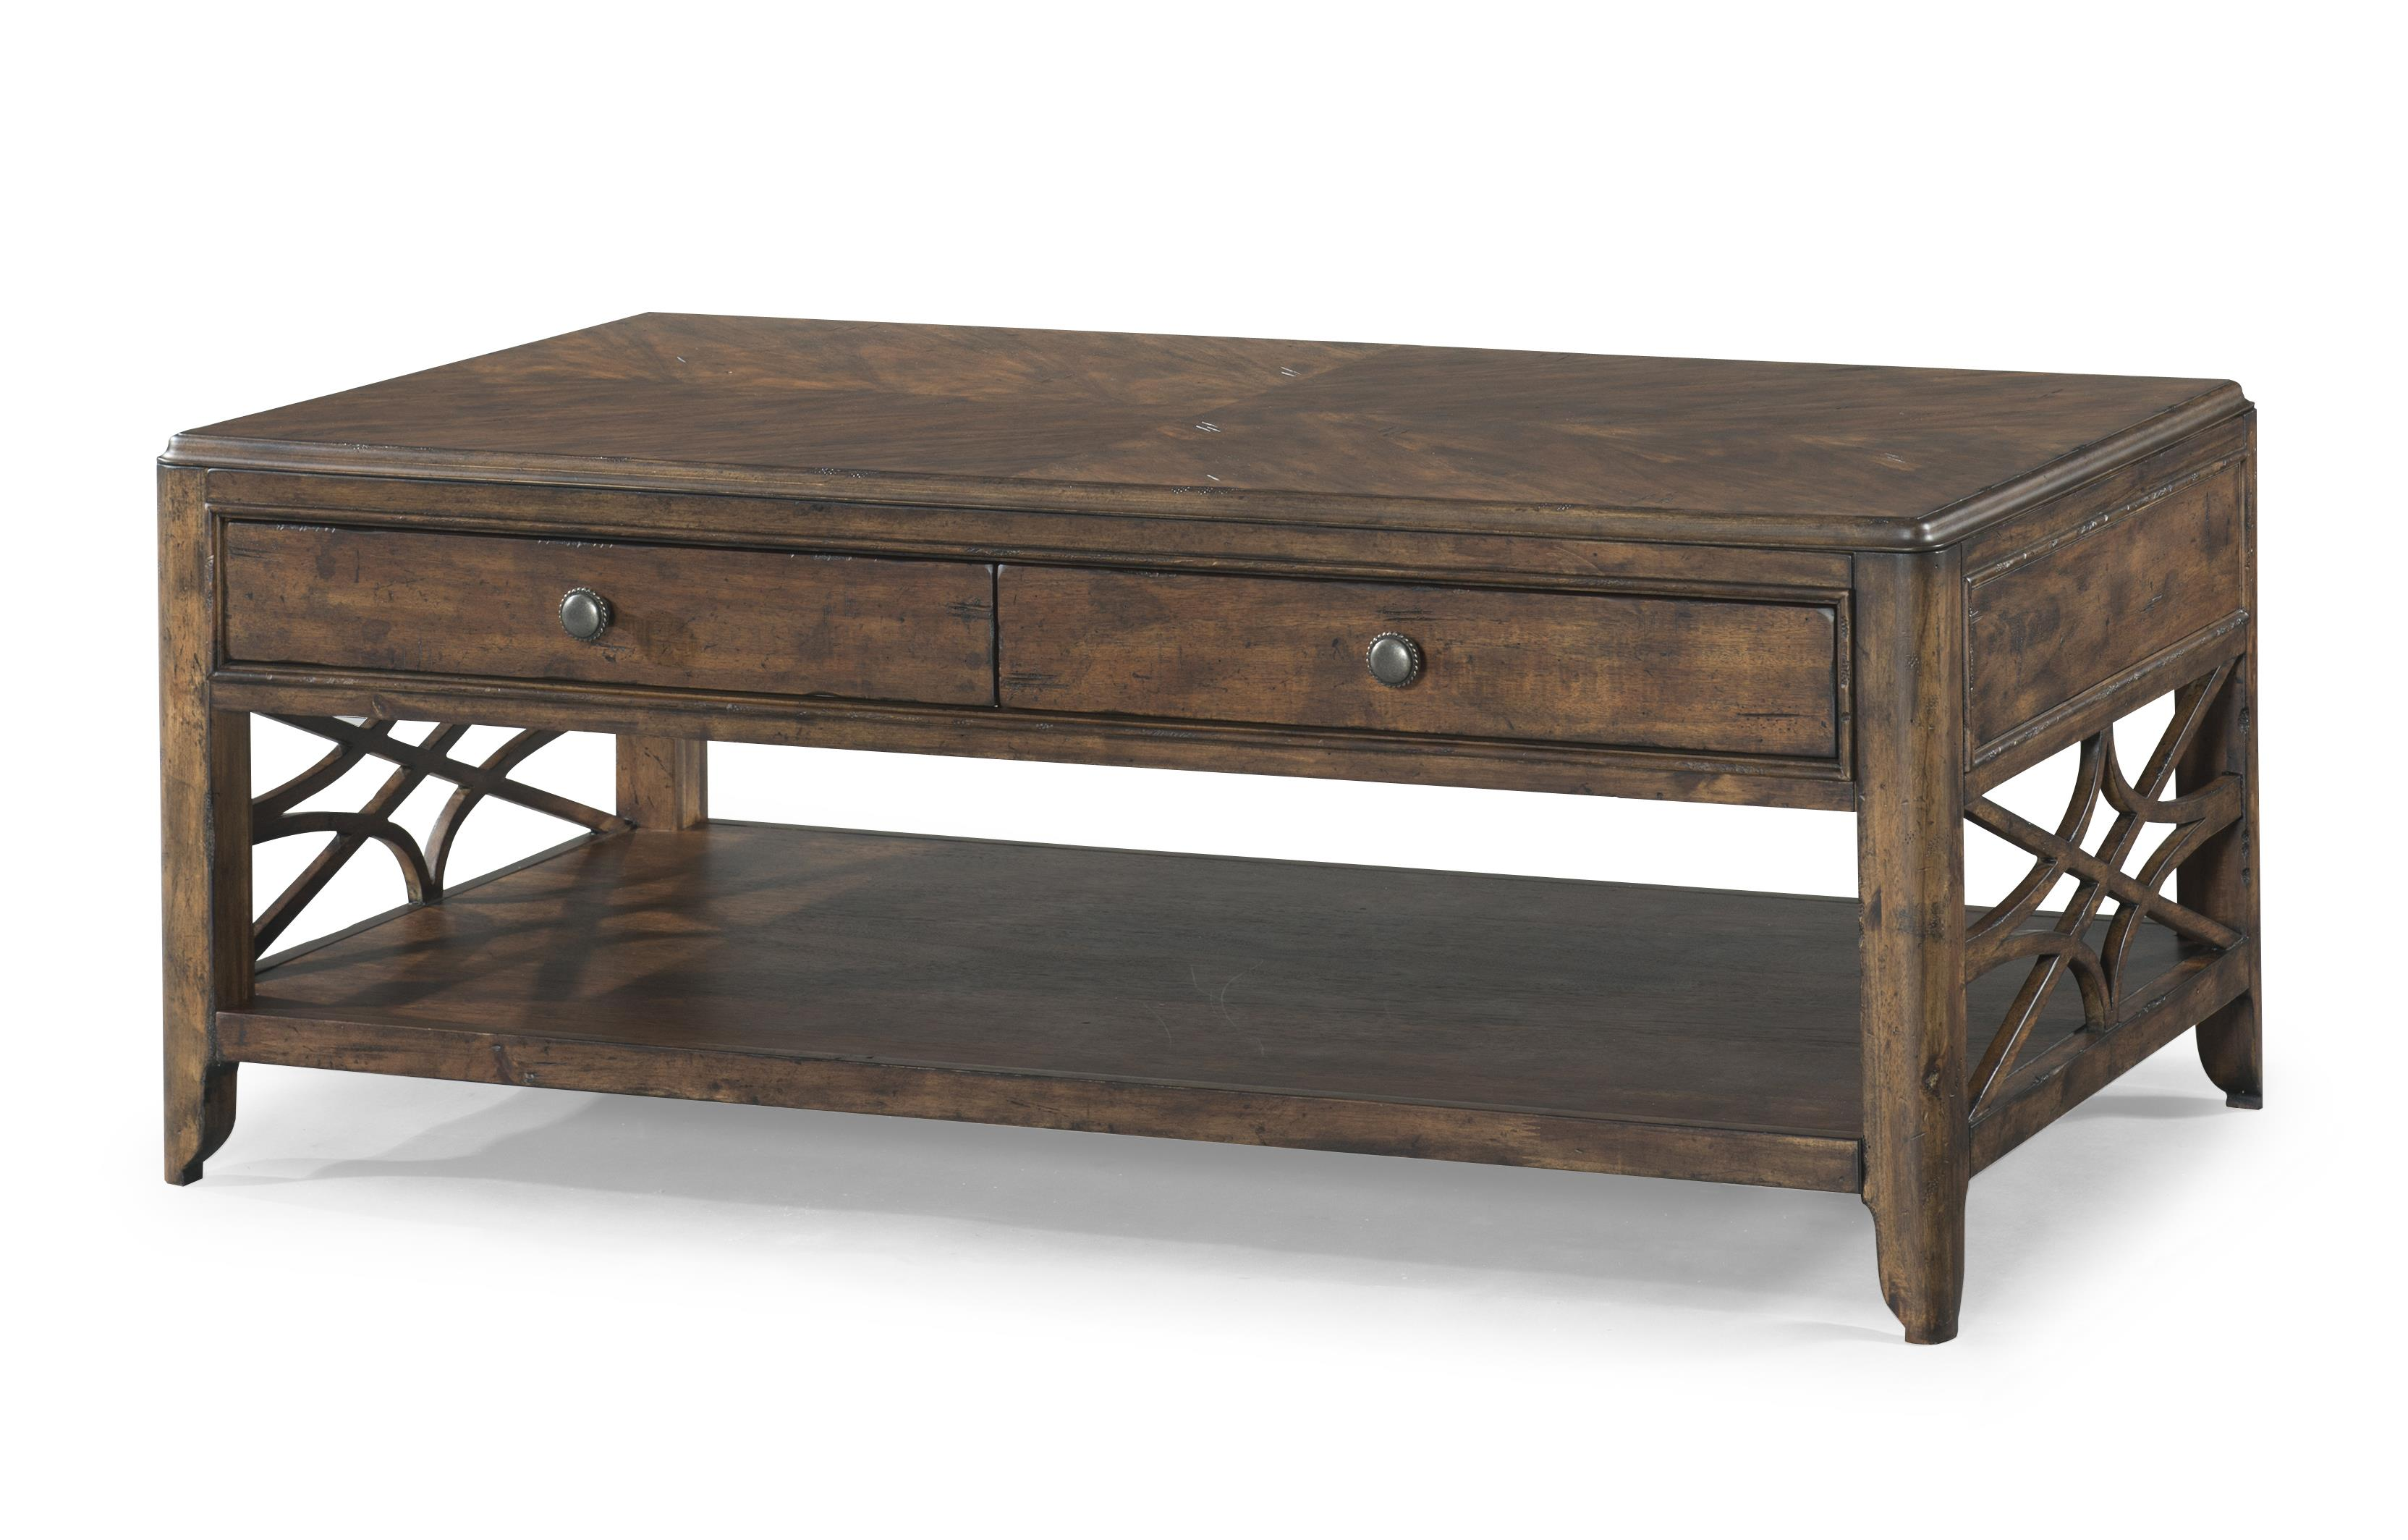 Trisha Yearwood Home Cocktail Table by Klaussner at HomeWorld Furniture